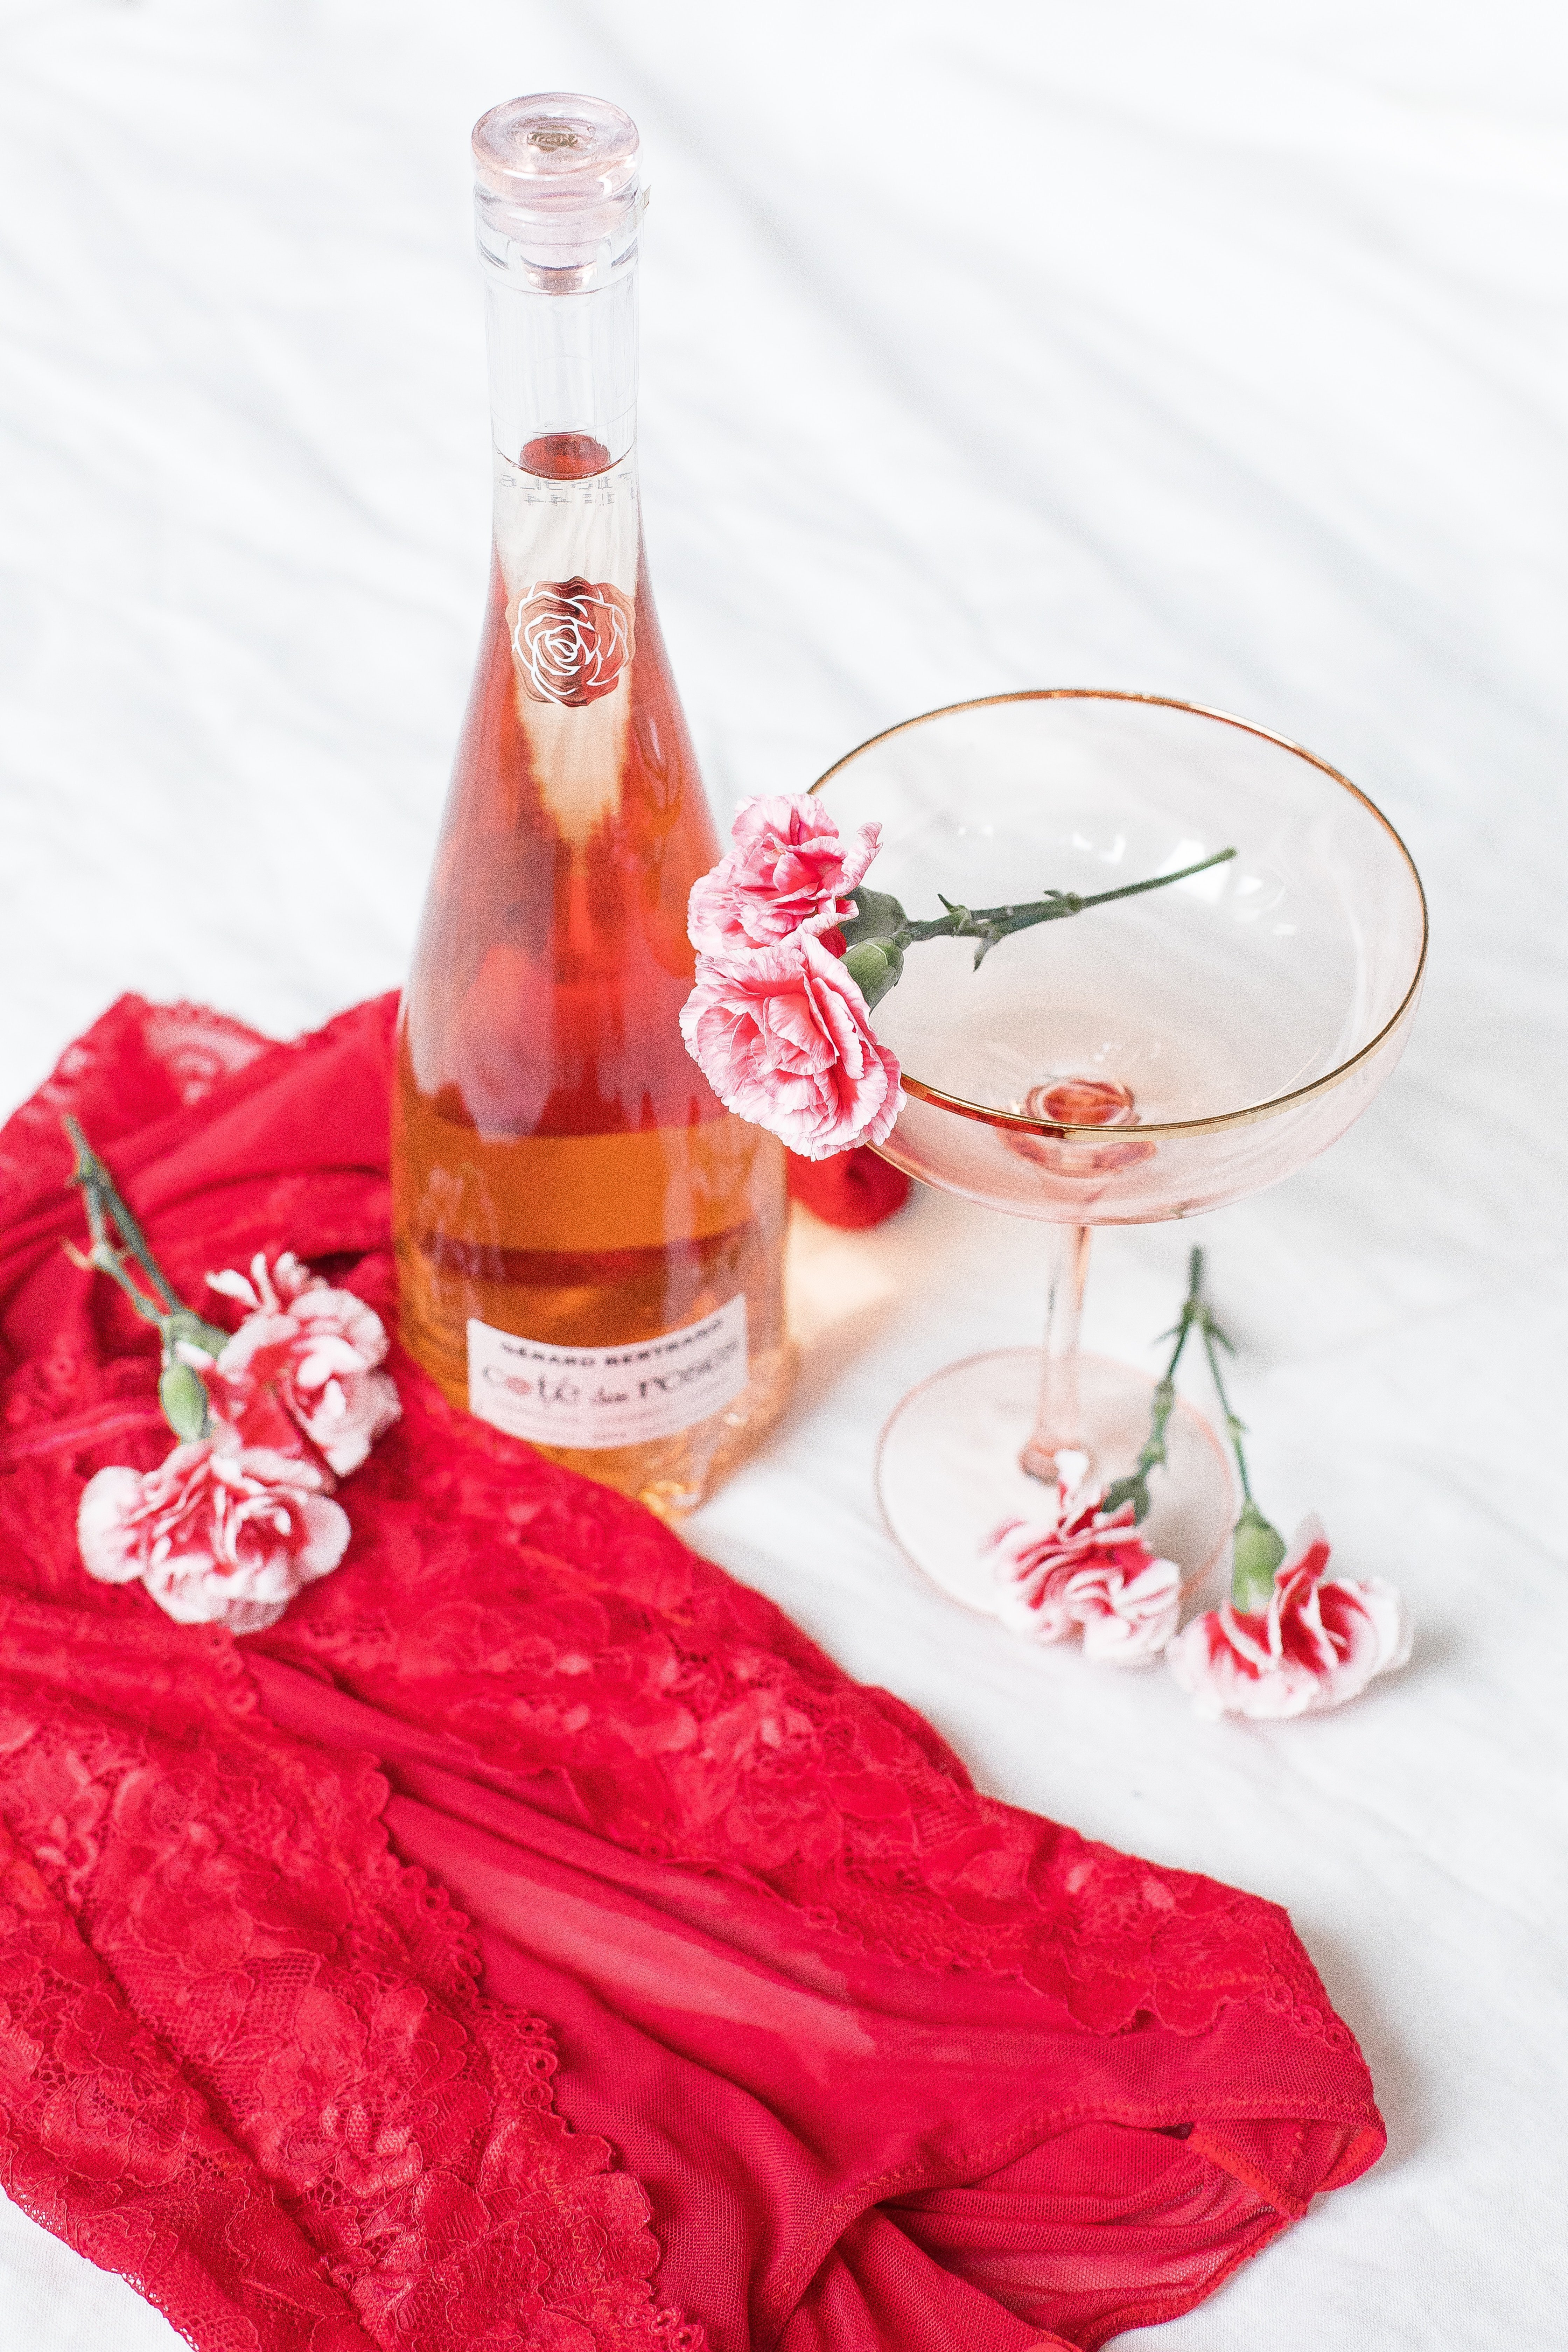 5 Valentine's ideas for yourself